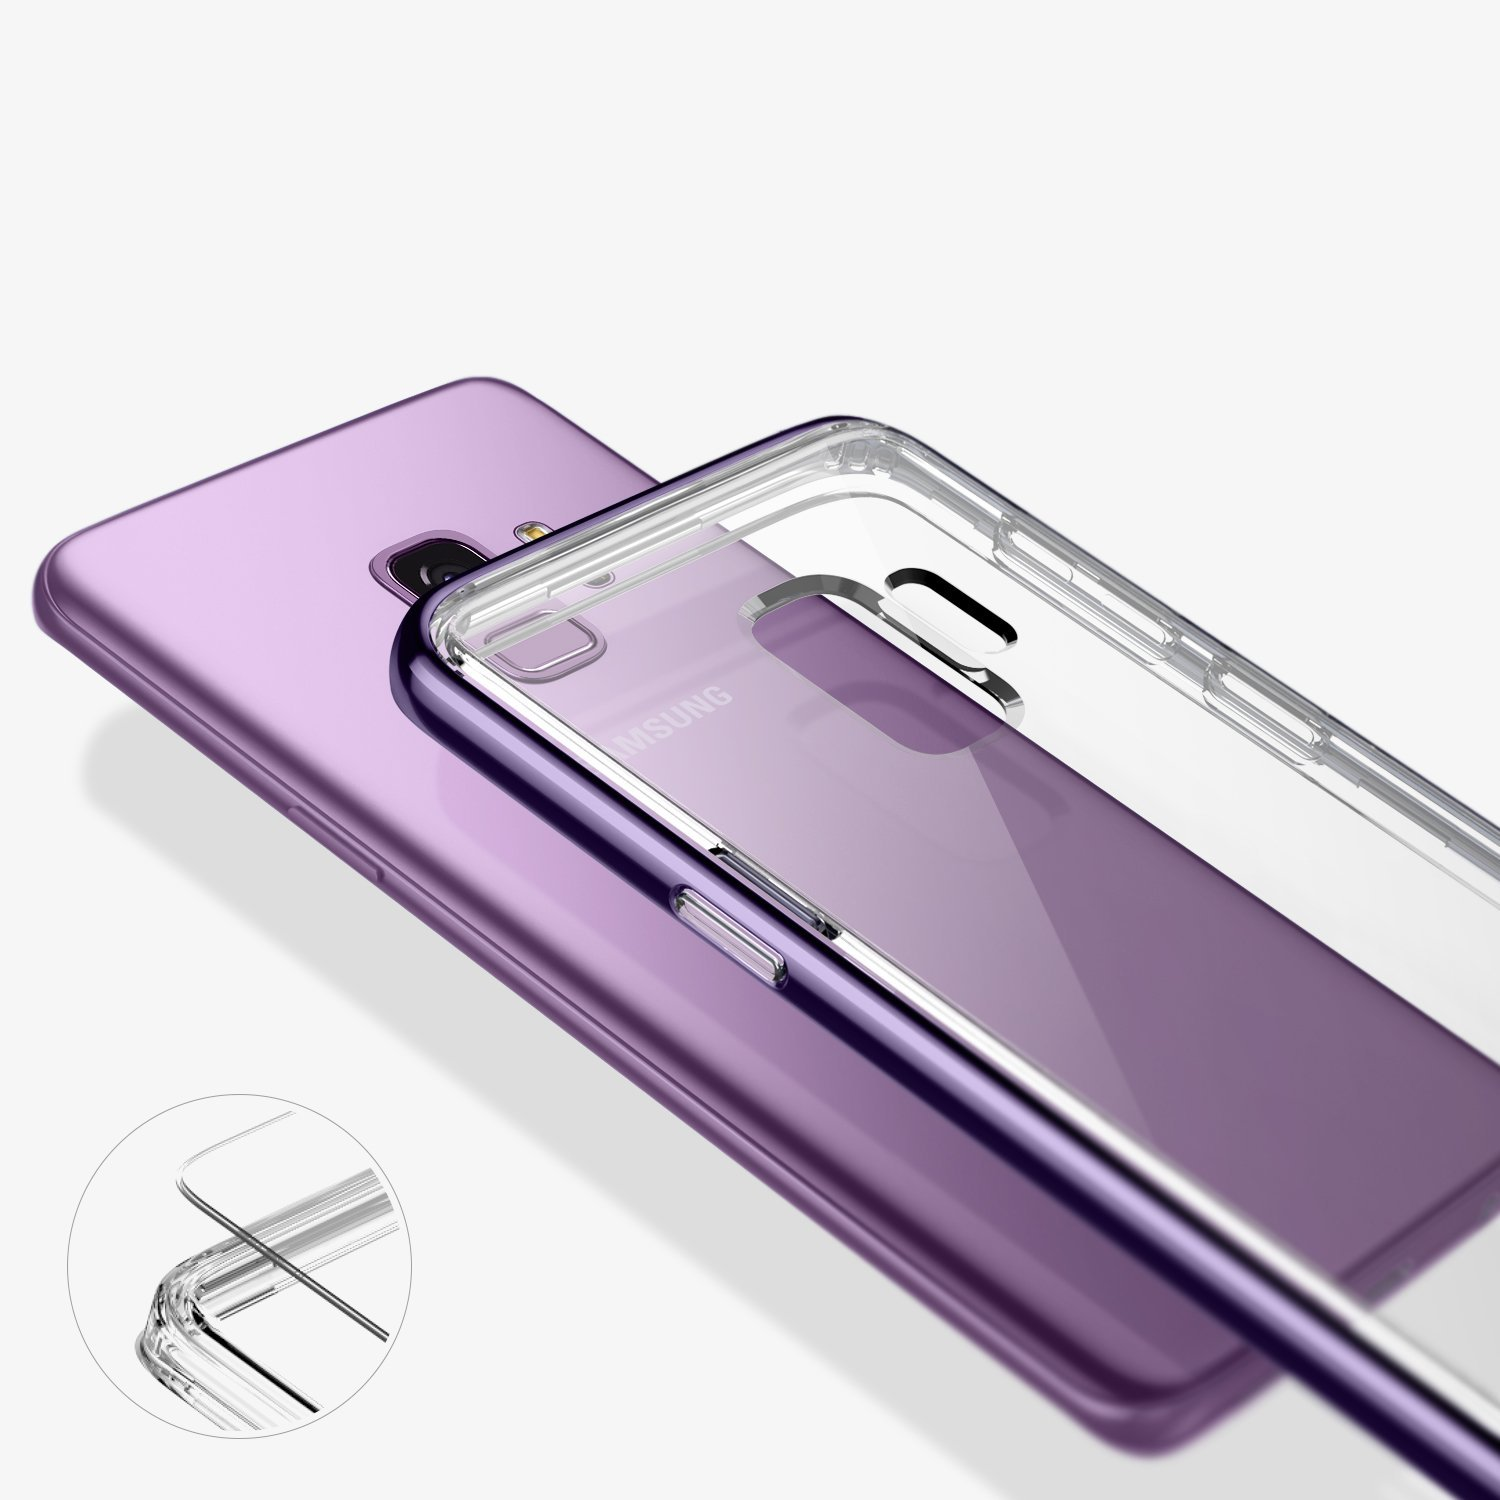 7 Samsung Galaxy S9 Cases You Can Buy Today Spigen Thin Fit Note 5 Hardcase Tipis Original Best For Showing Off Caseology Skyfall